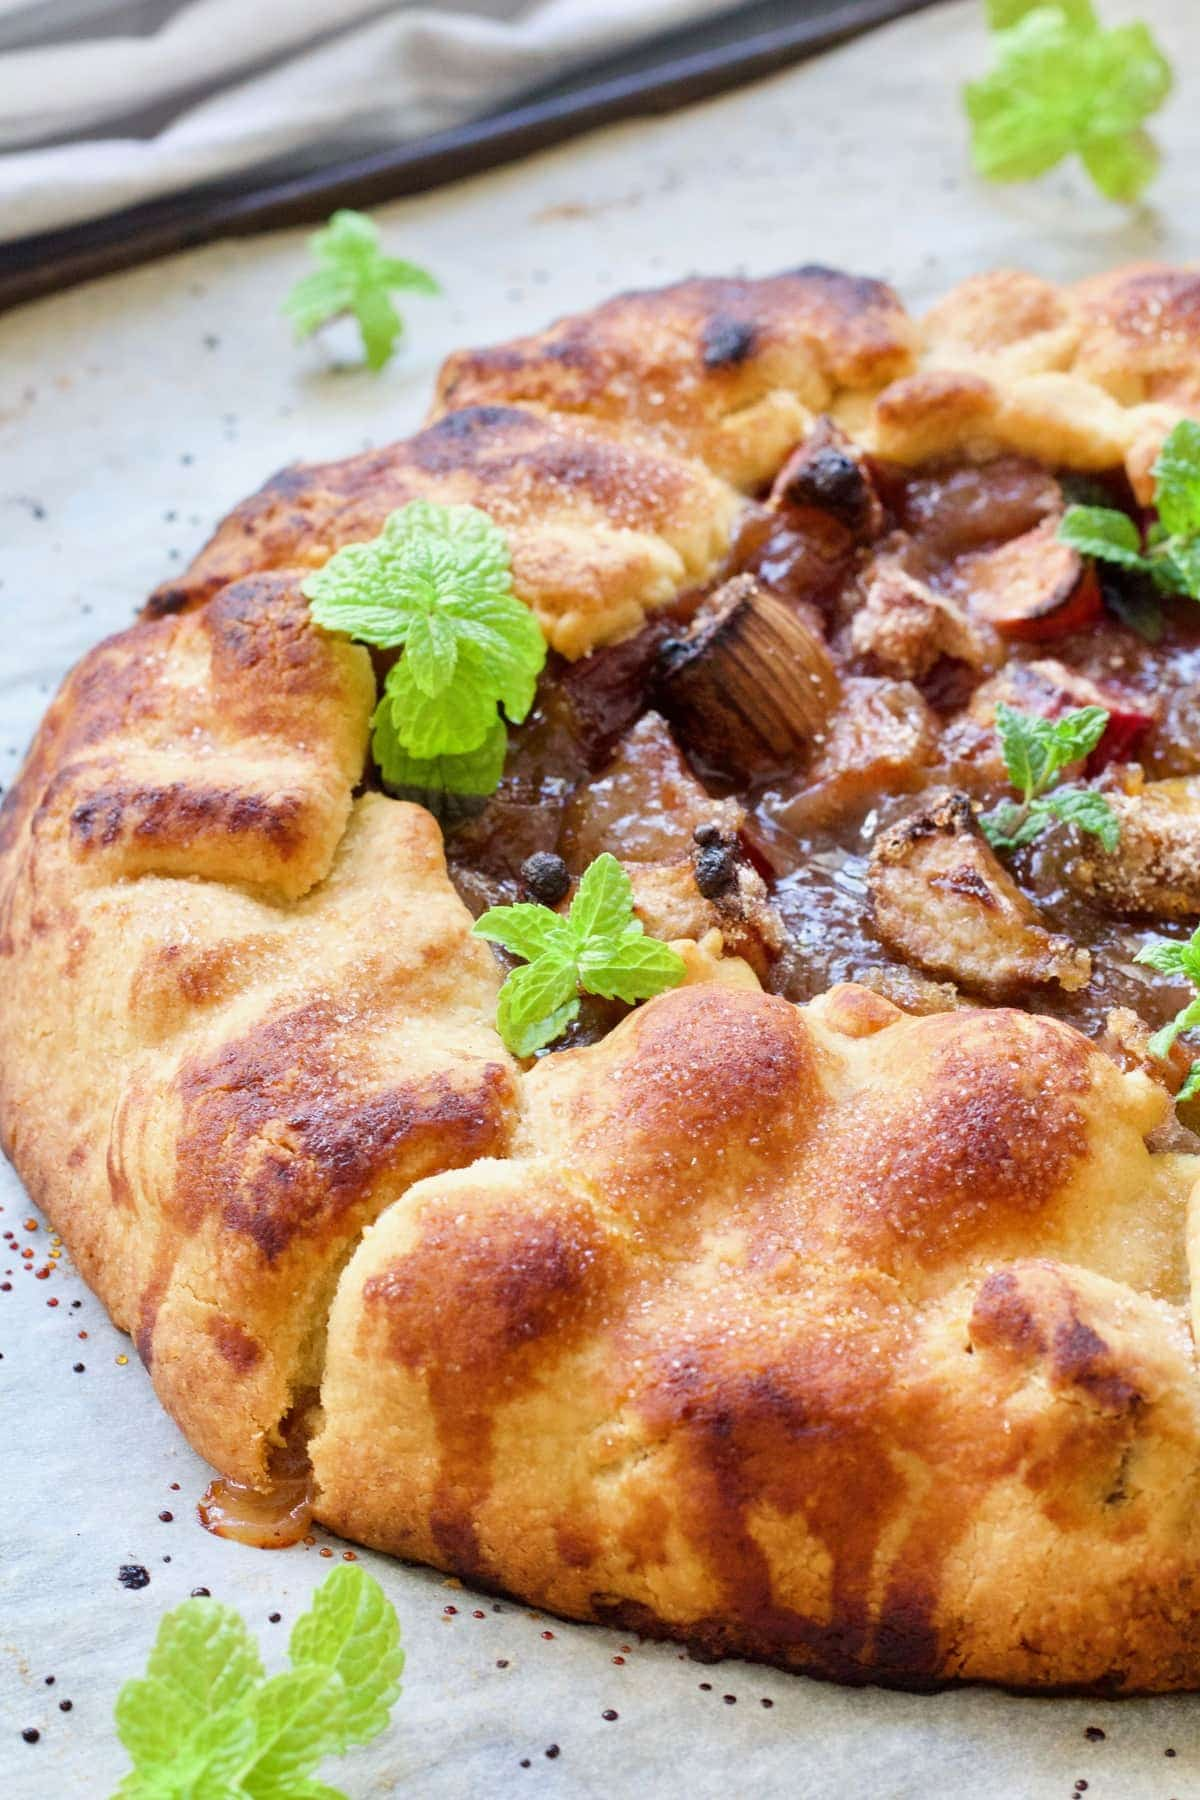 Close up of half of a rustic tart with mint garnish.